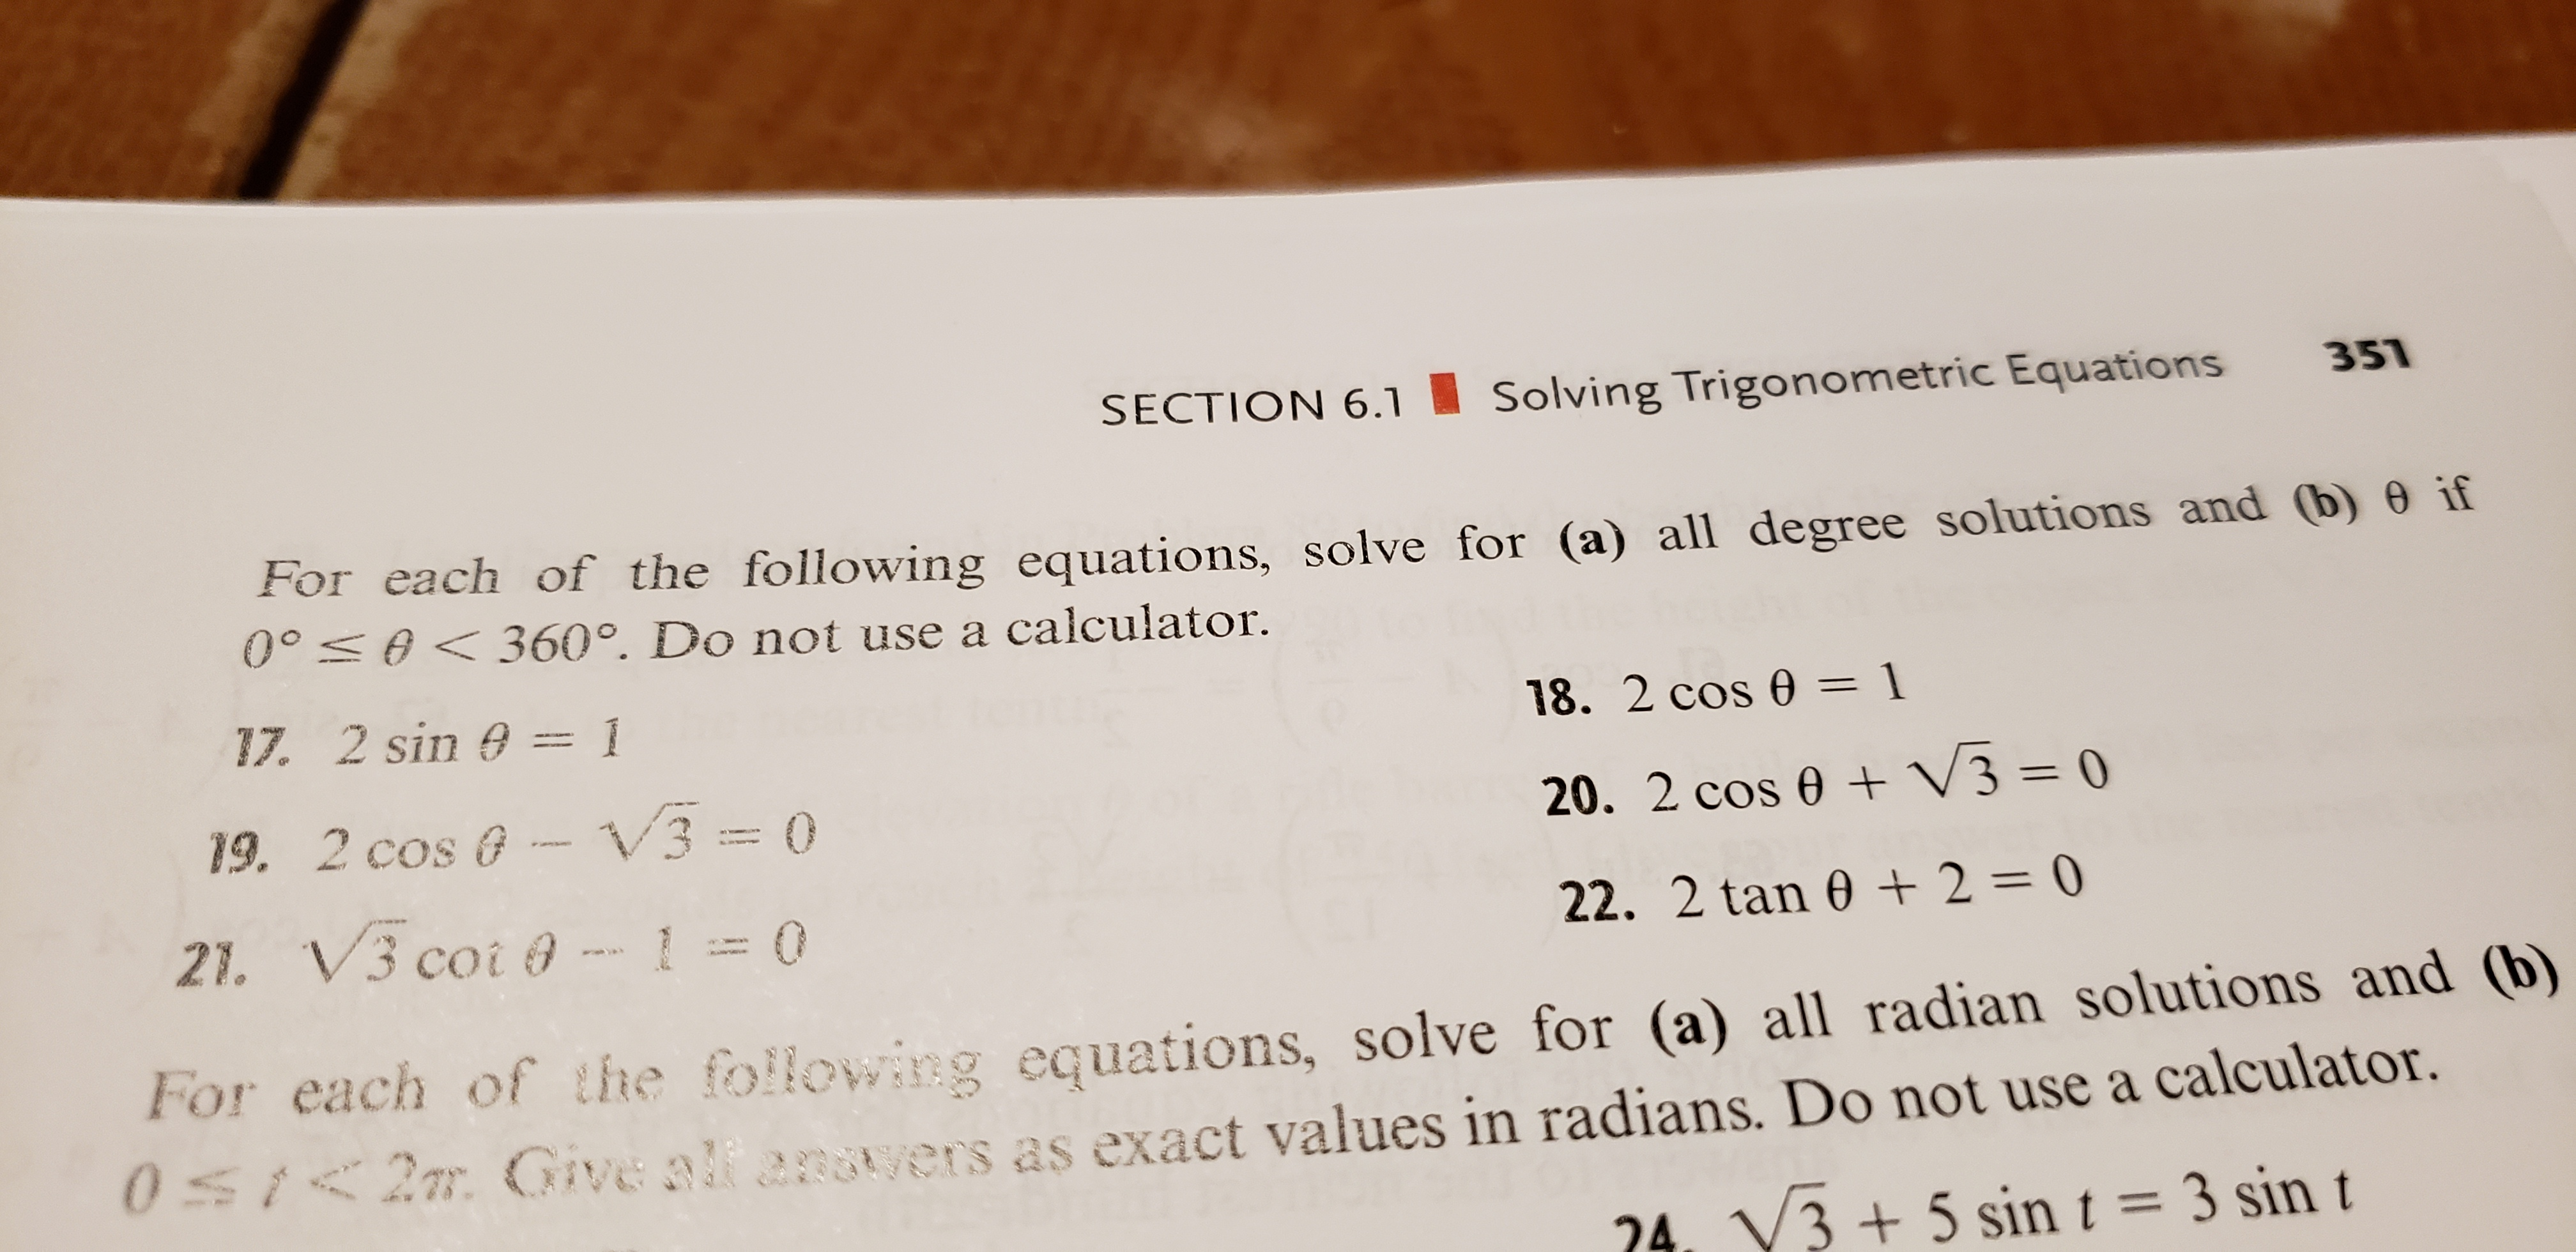 SECTION 6.1 351 Solving Trigonometric Equations For each of the following equations, solve for (a) all degree solutions and (b) 0 if 00 0360°. Do not use a calculator. 17. 2 sin 0 1 18. 2 cos 0 = 1 V3 = 0 3 19. 2 cos @ 20. 2 cos e 0 21. V3 coi @ 22. 2 tan 0 2 = 0 For each of the following equations, solve for (a) all radian solutions and (b) 0St2m Give alf angtyers as exact values in radians. Do not use a calculator. 24. V3+ 5 sin t = 3 sin t FO